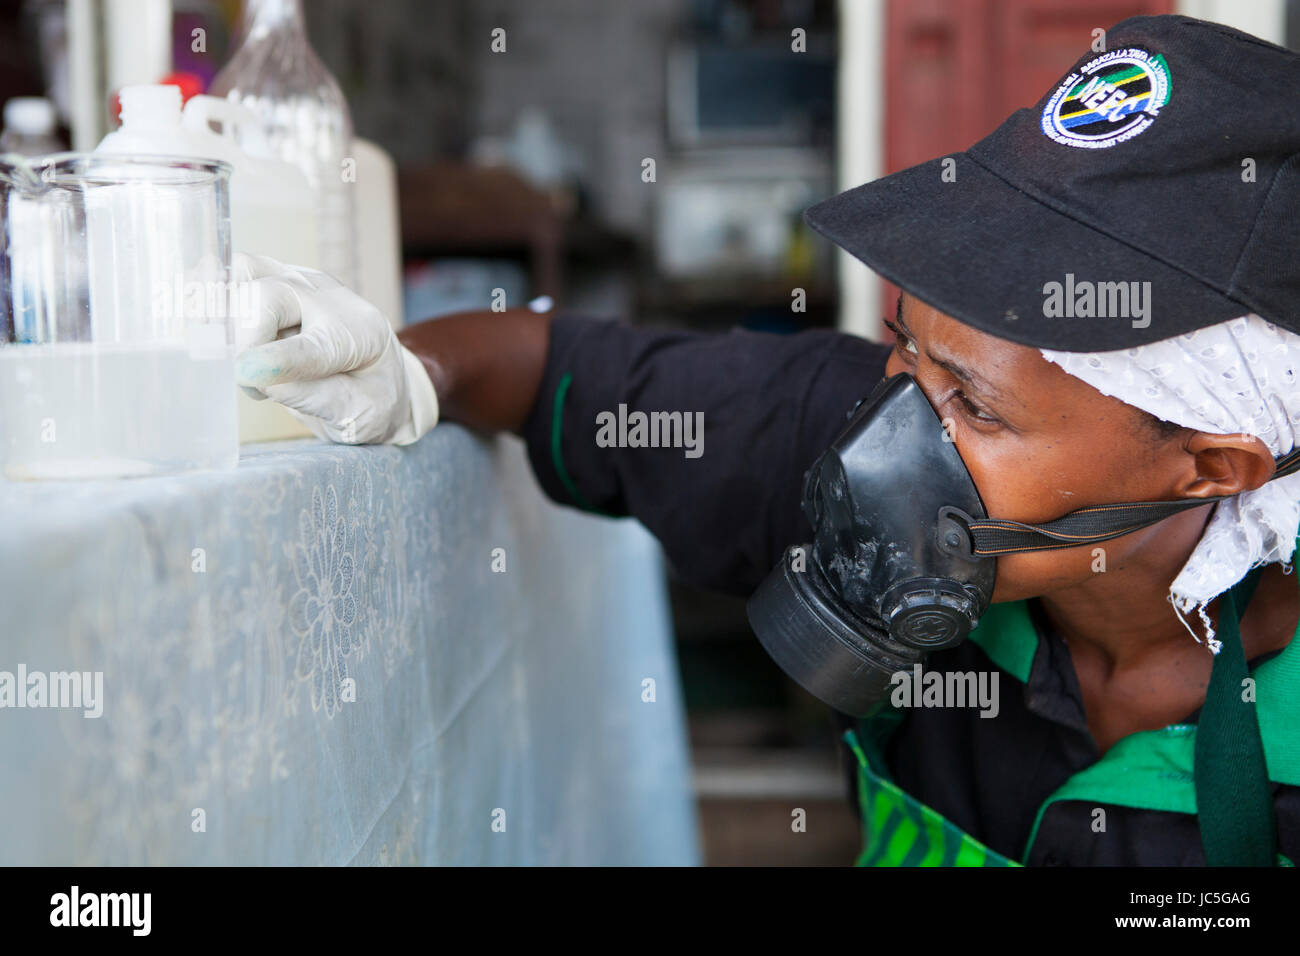 Female small business owner, making cleaning products, Tanzania, Africa Stock Photo